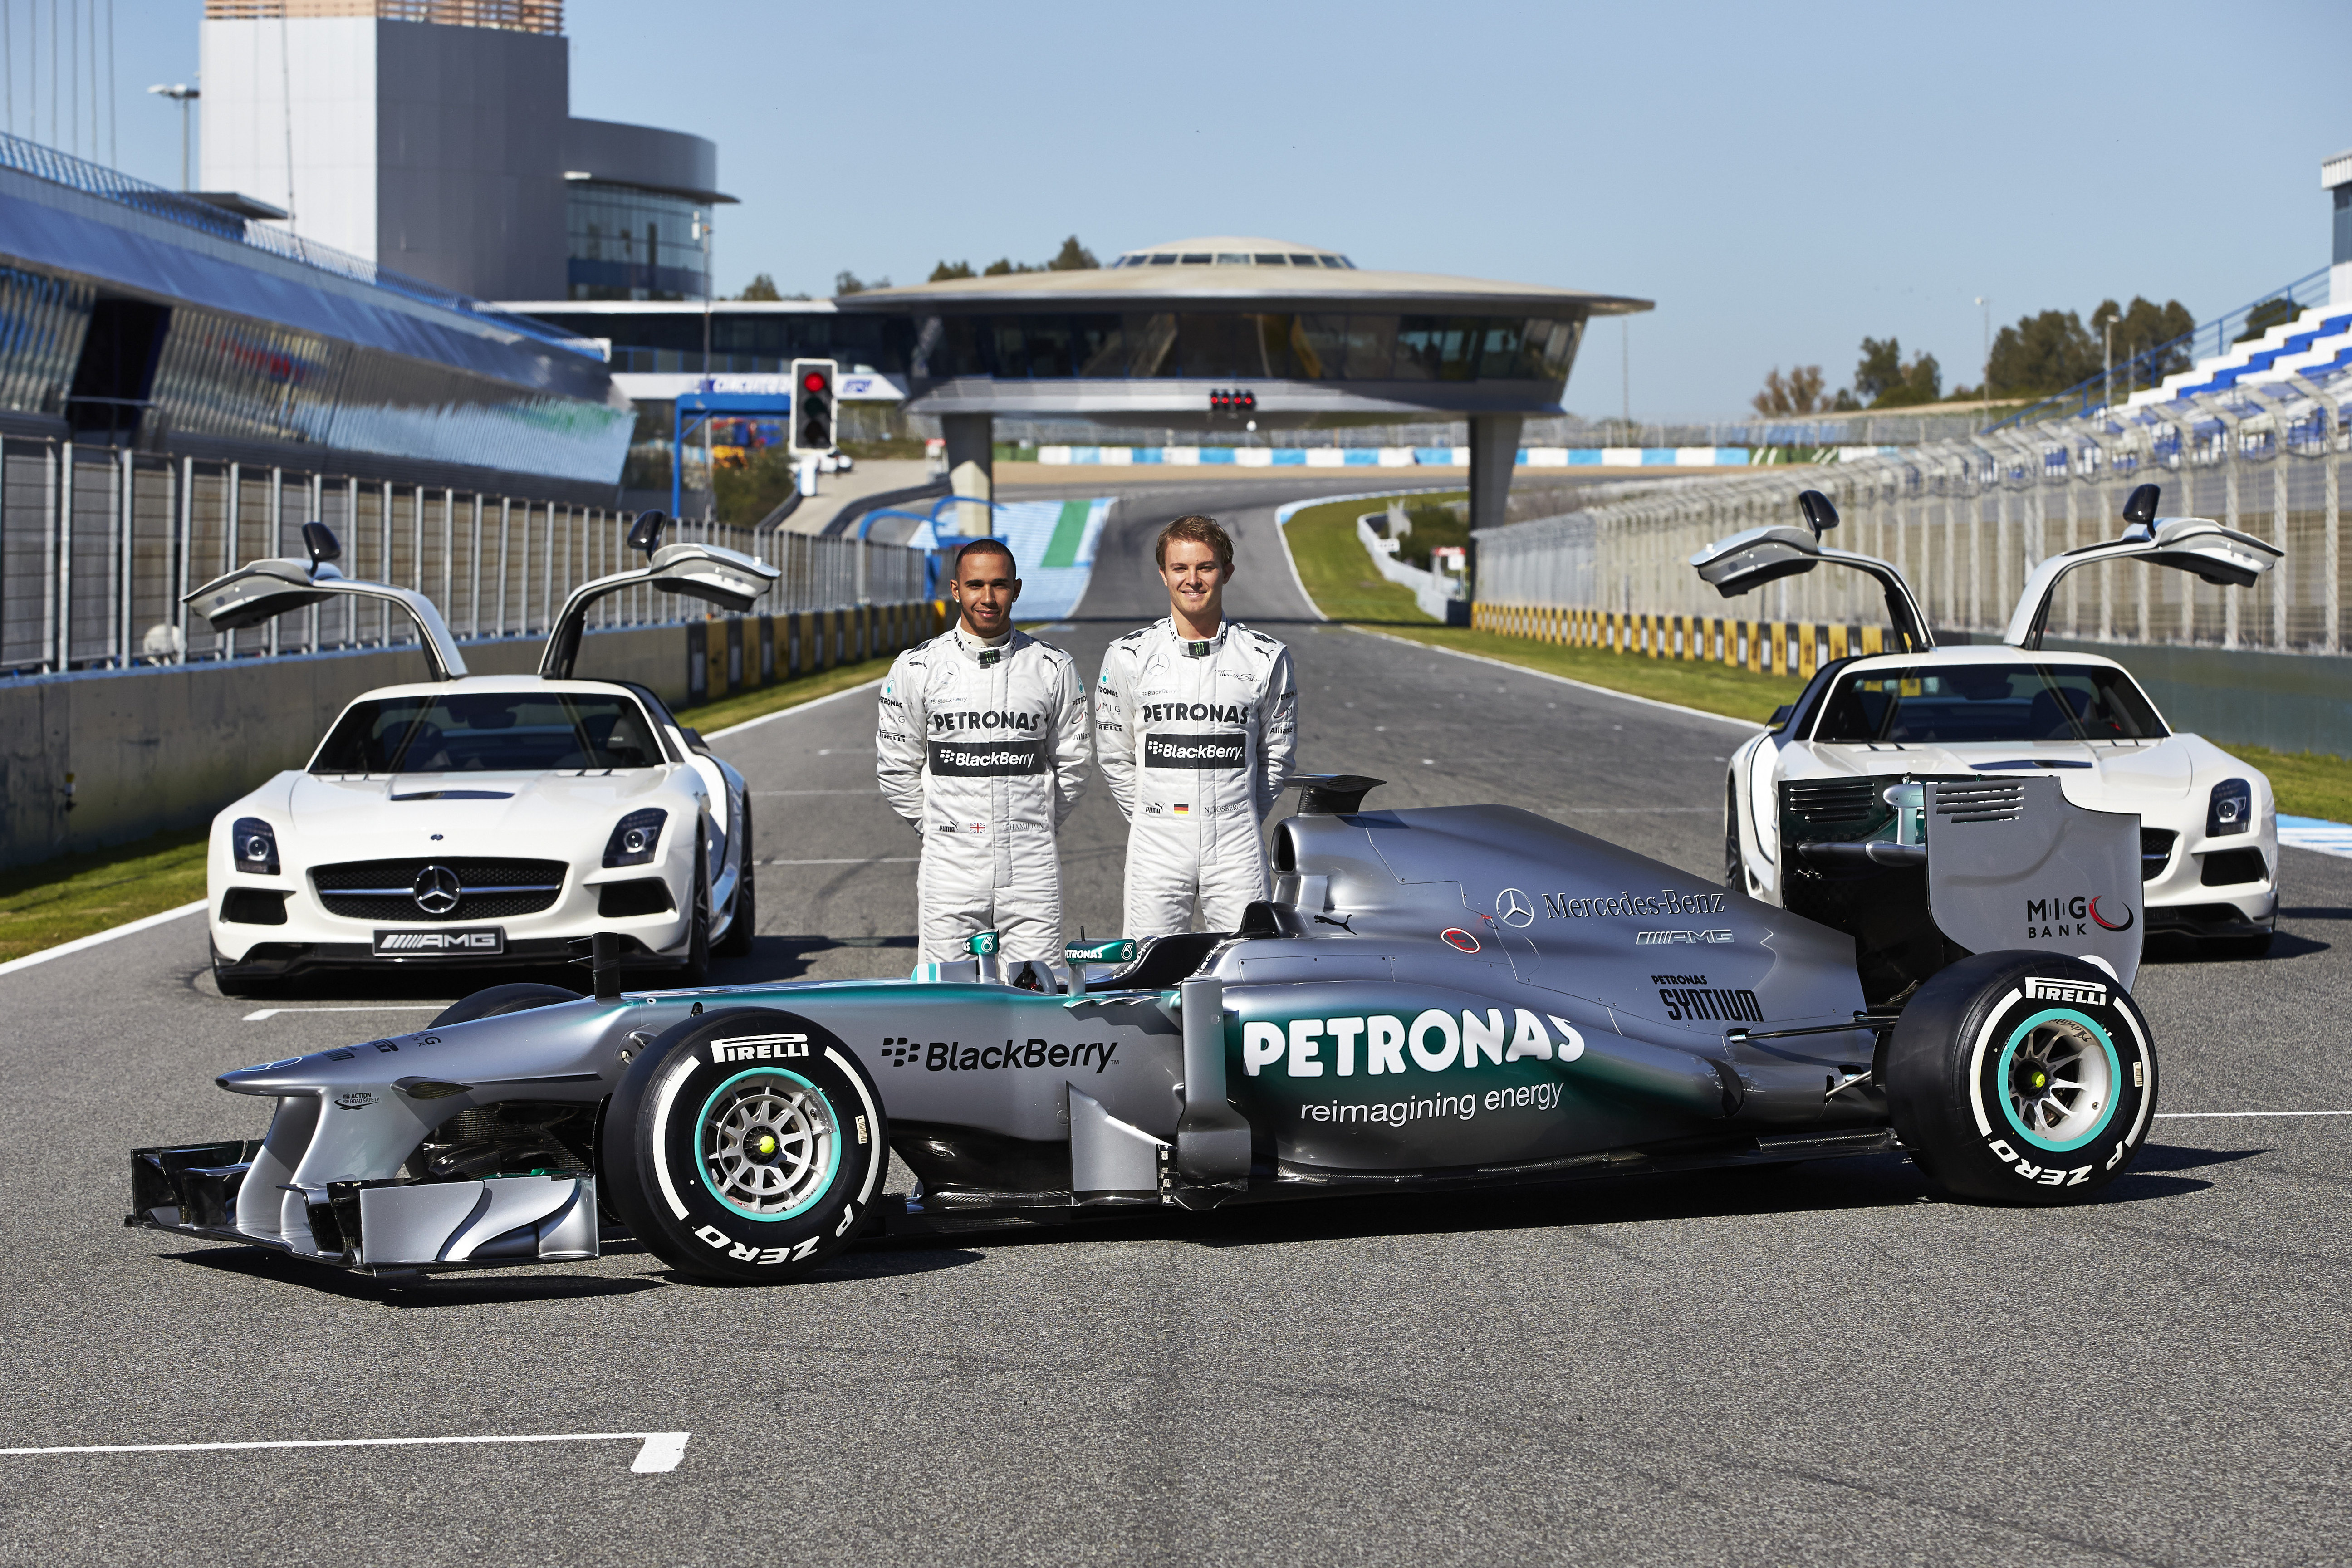 F1 mercedes amg petronas launches 2013 silver arrow in for Mercedes benz petronas